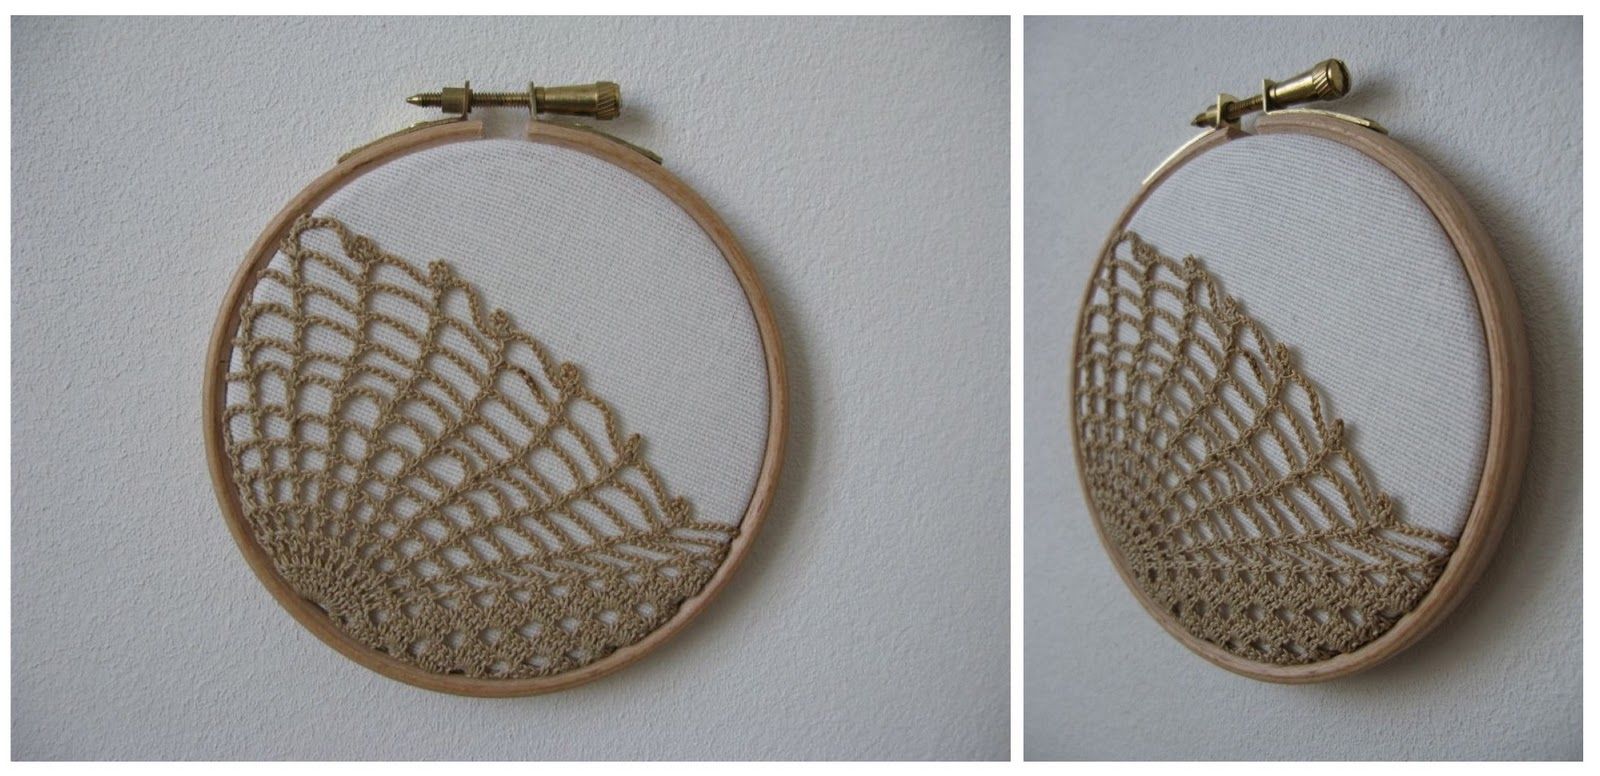 E17Craft: Crochet Wall Art & Lavender Sachets With Regard To Best And Newest Crochet Wall Art (Gallery 10 of 20)